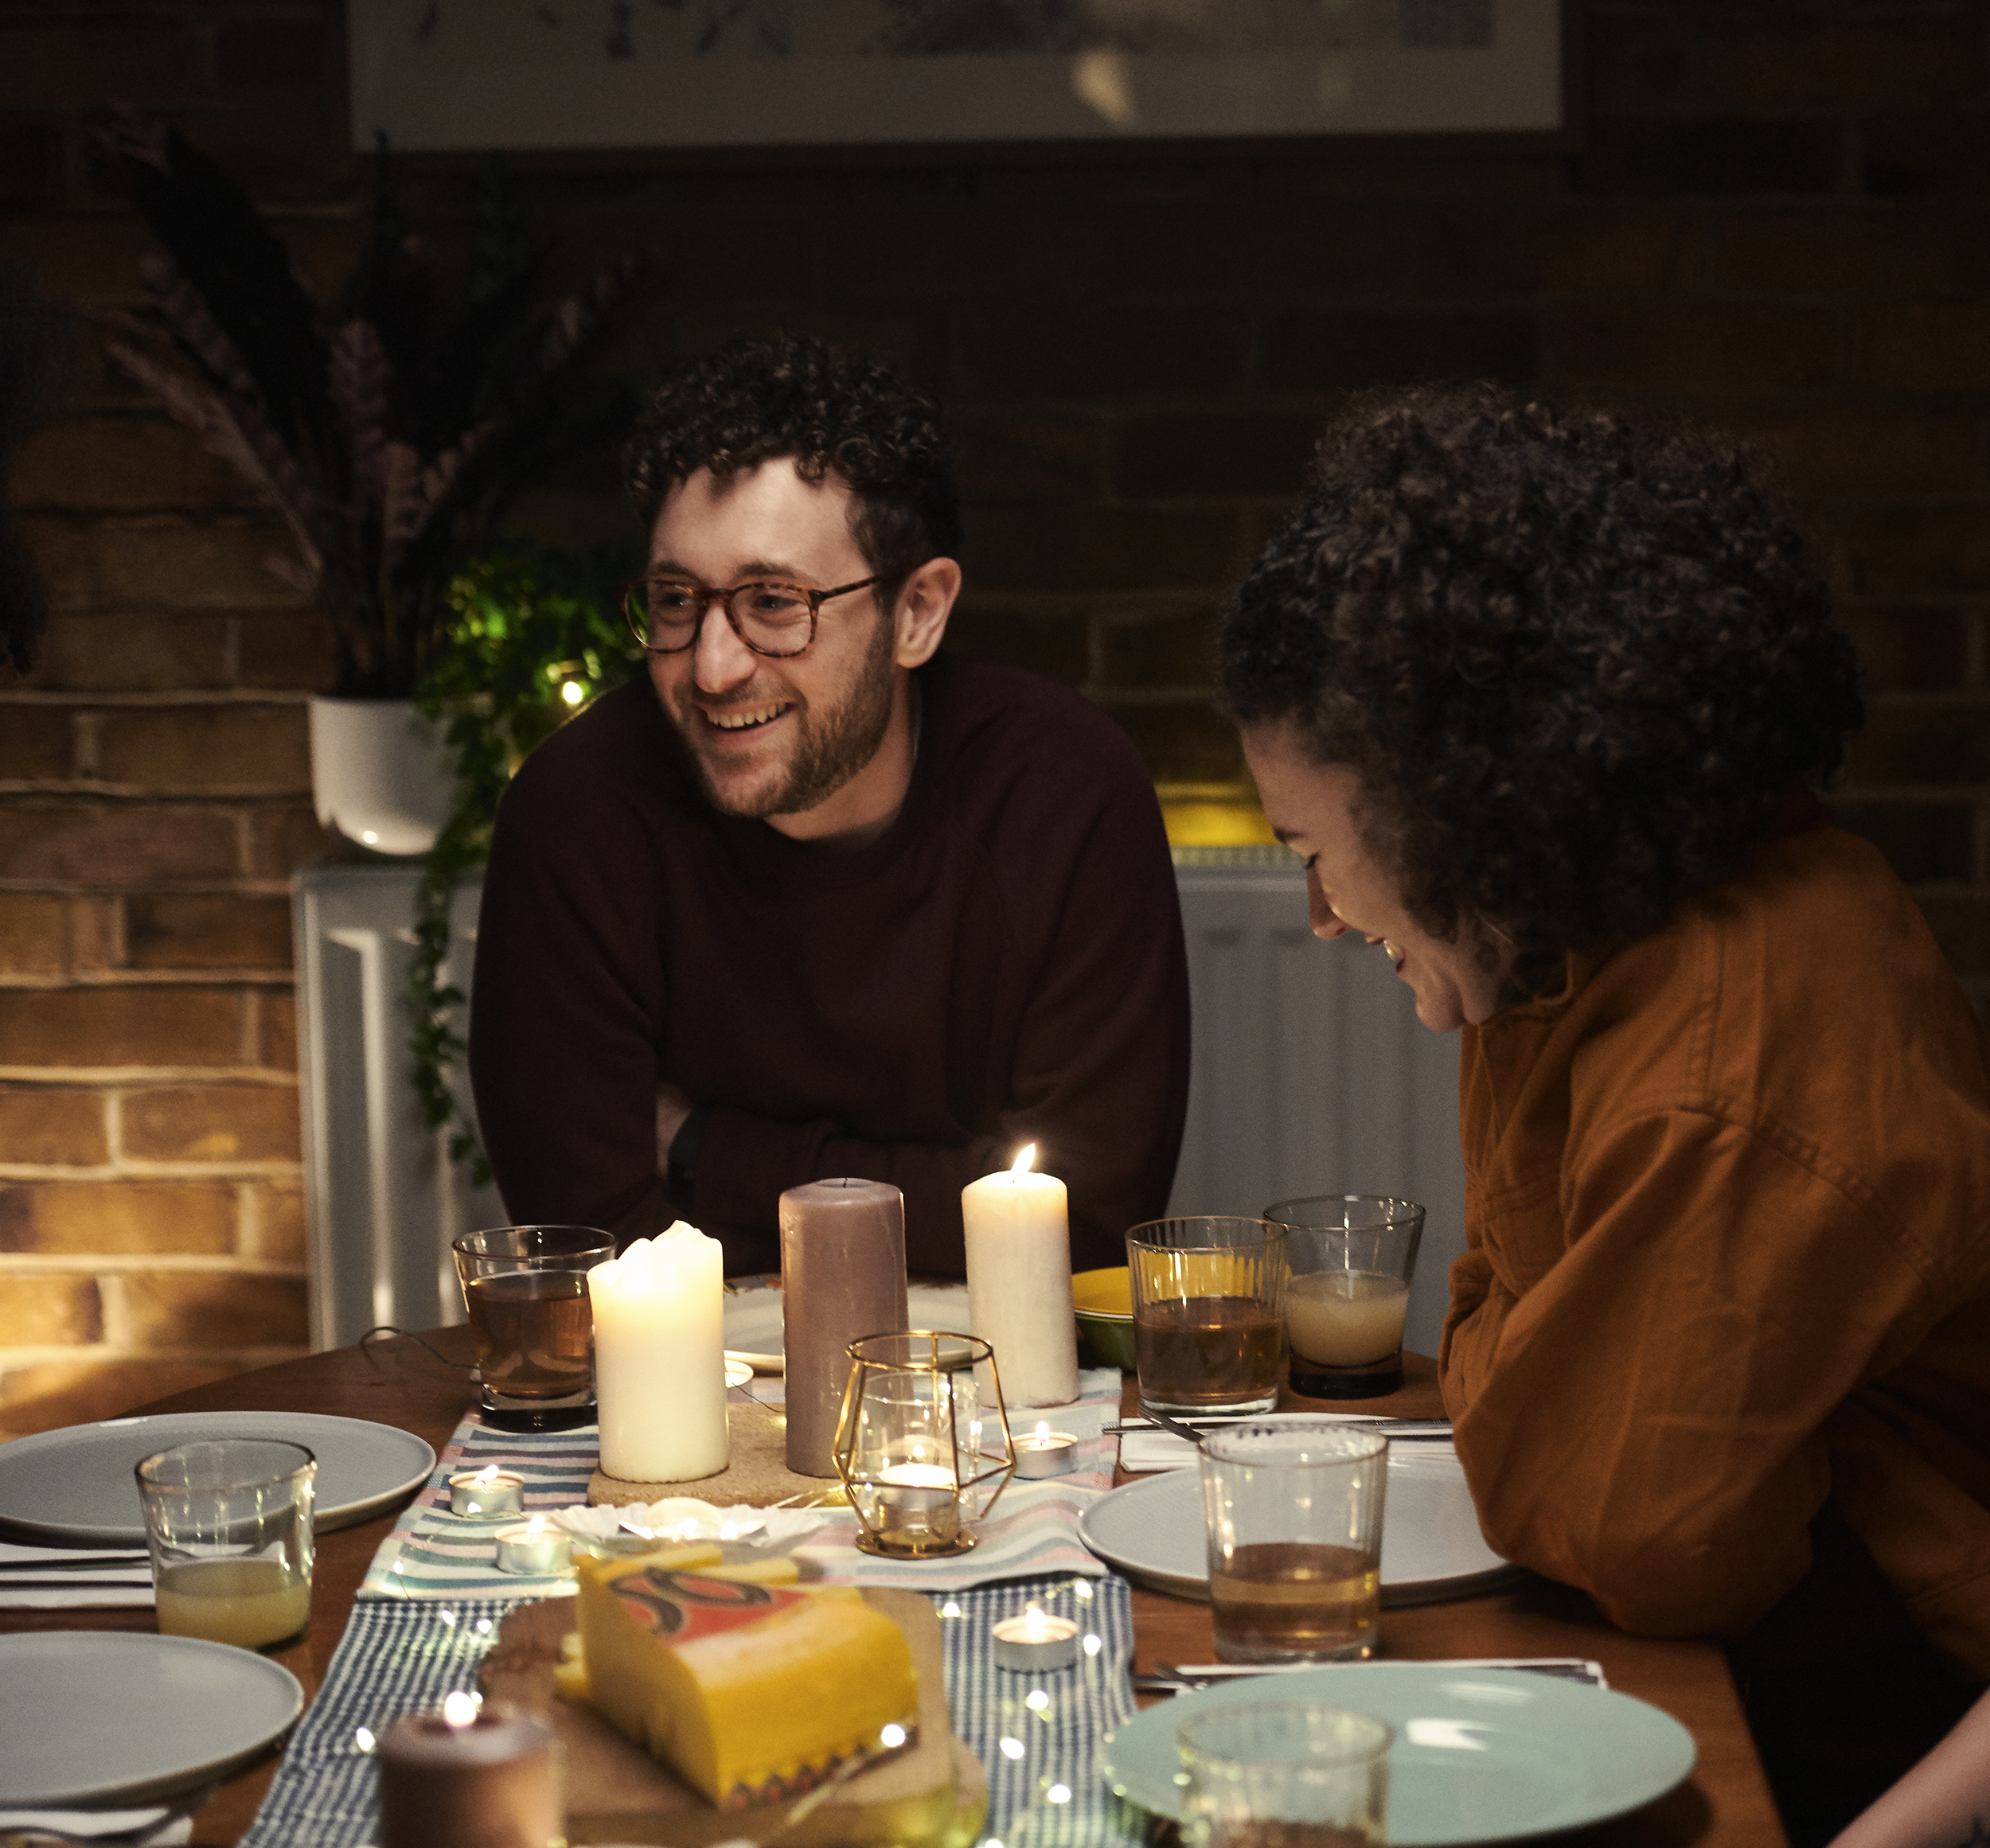 Lifestyle photography of a young couple at a dinner table with drinks